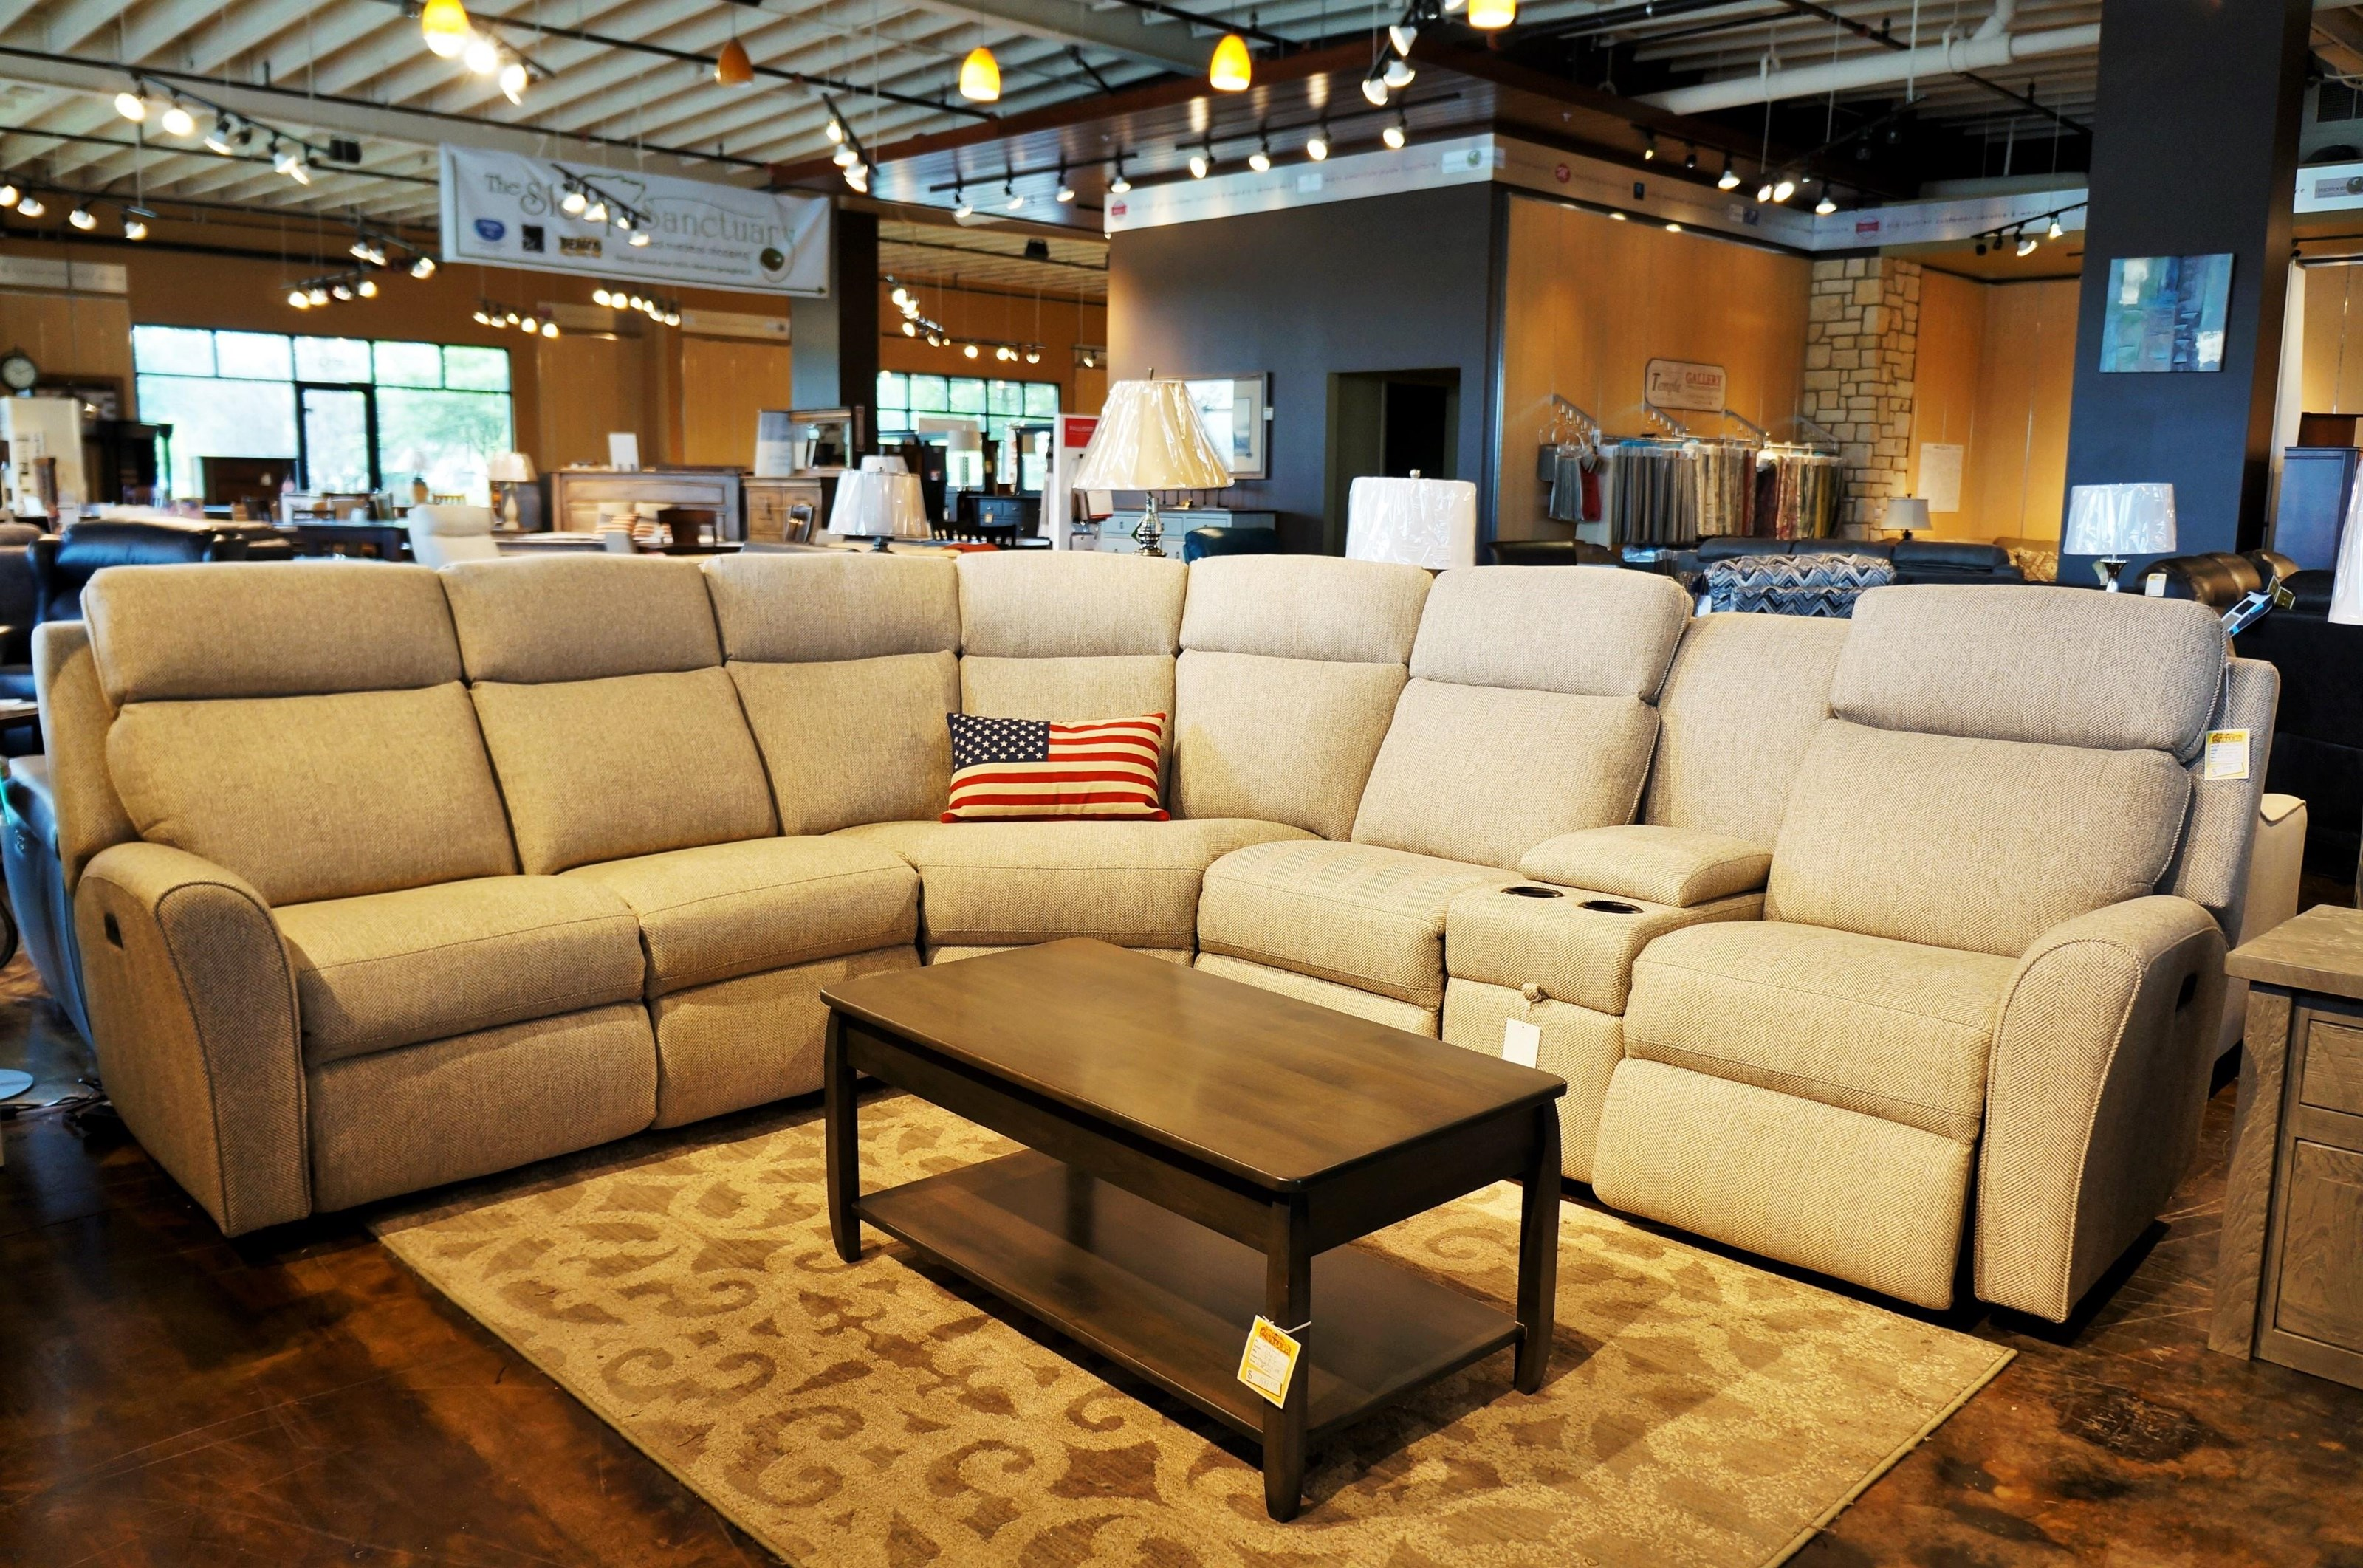 418 Motorized Reclining Sectional Sofa by Smith Brothers at Mueller Furniture